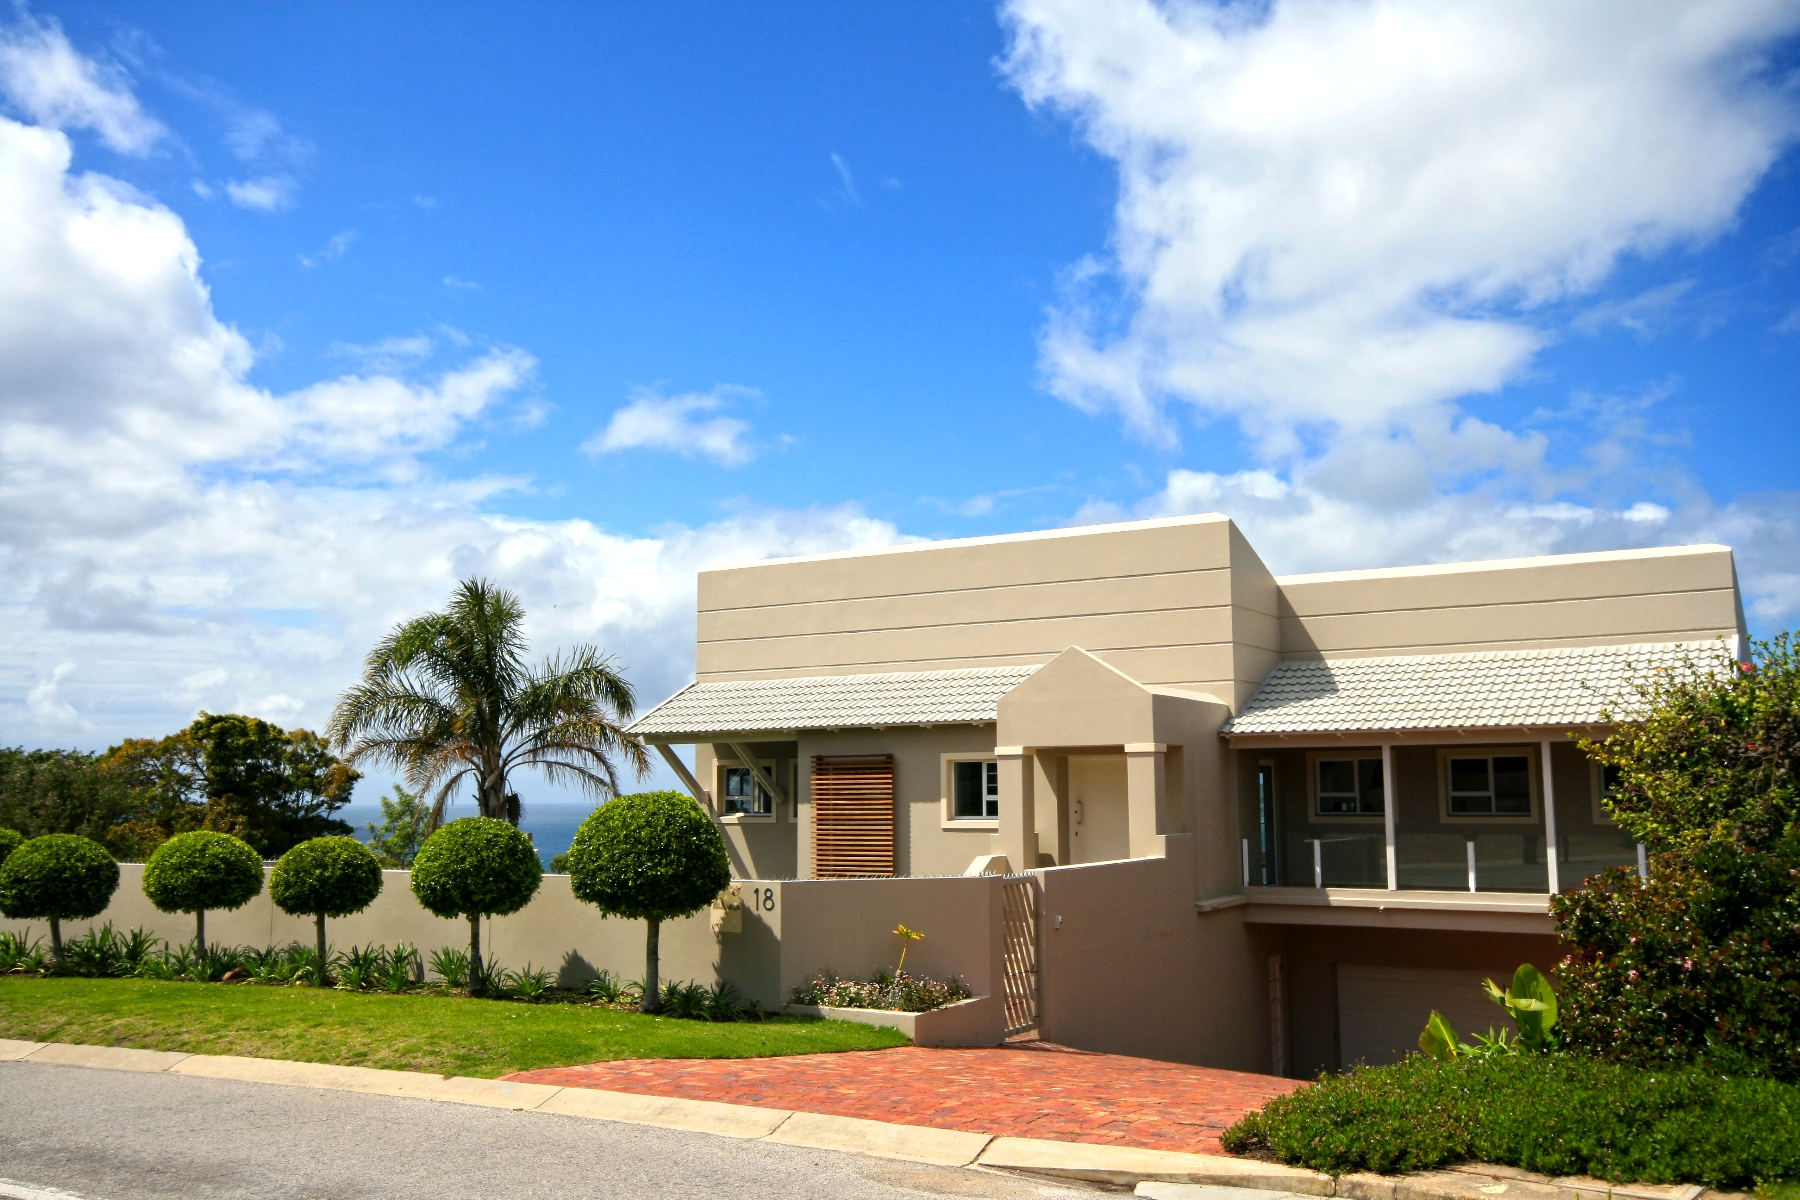 Single Family Home for Sale at Amazing Breathtaking Views Plettenberg Bay, Western Cape 6600 South Africa